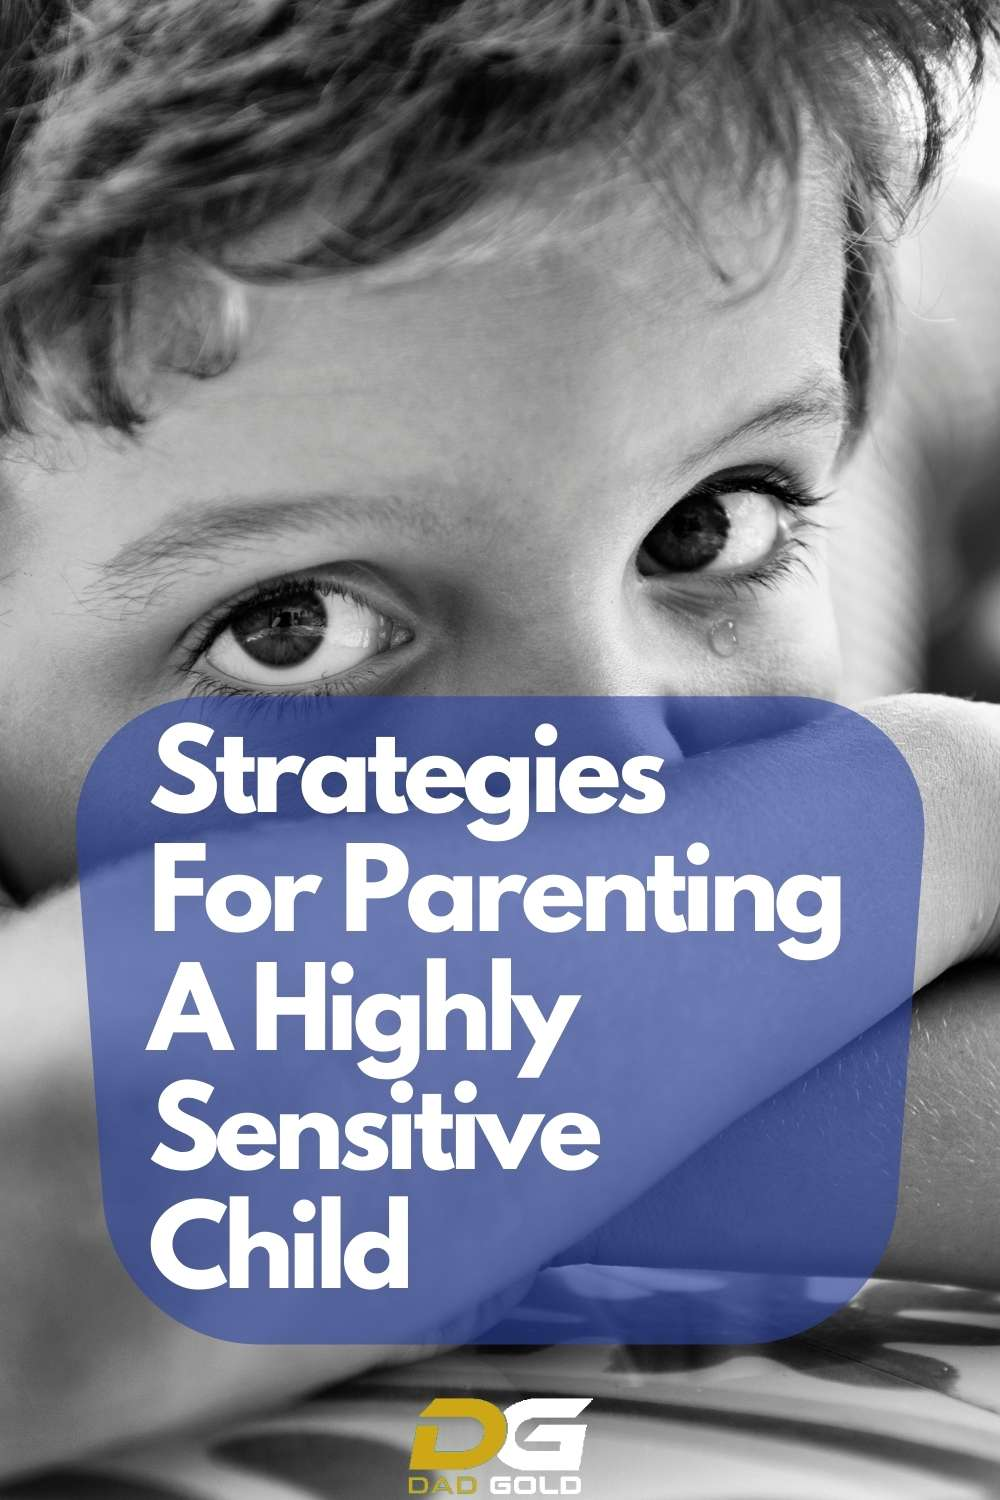 Strategies For Parenting A Highly Sensitive Child